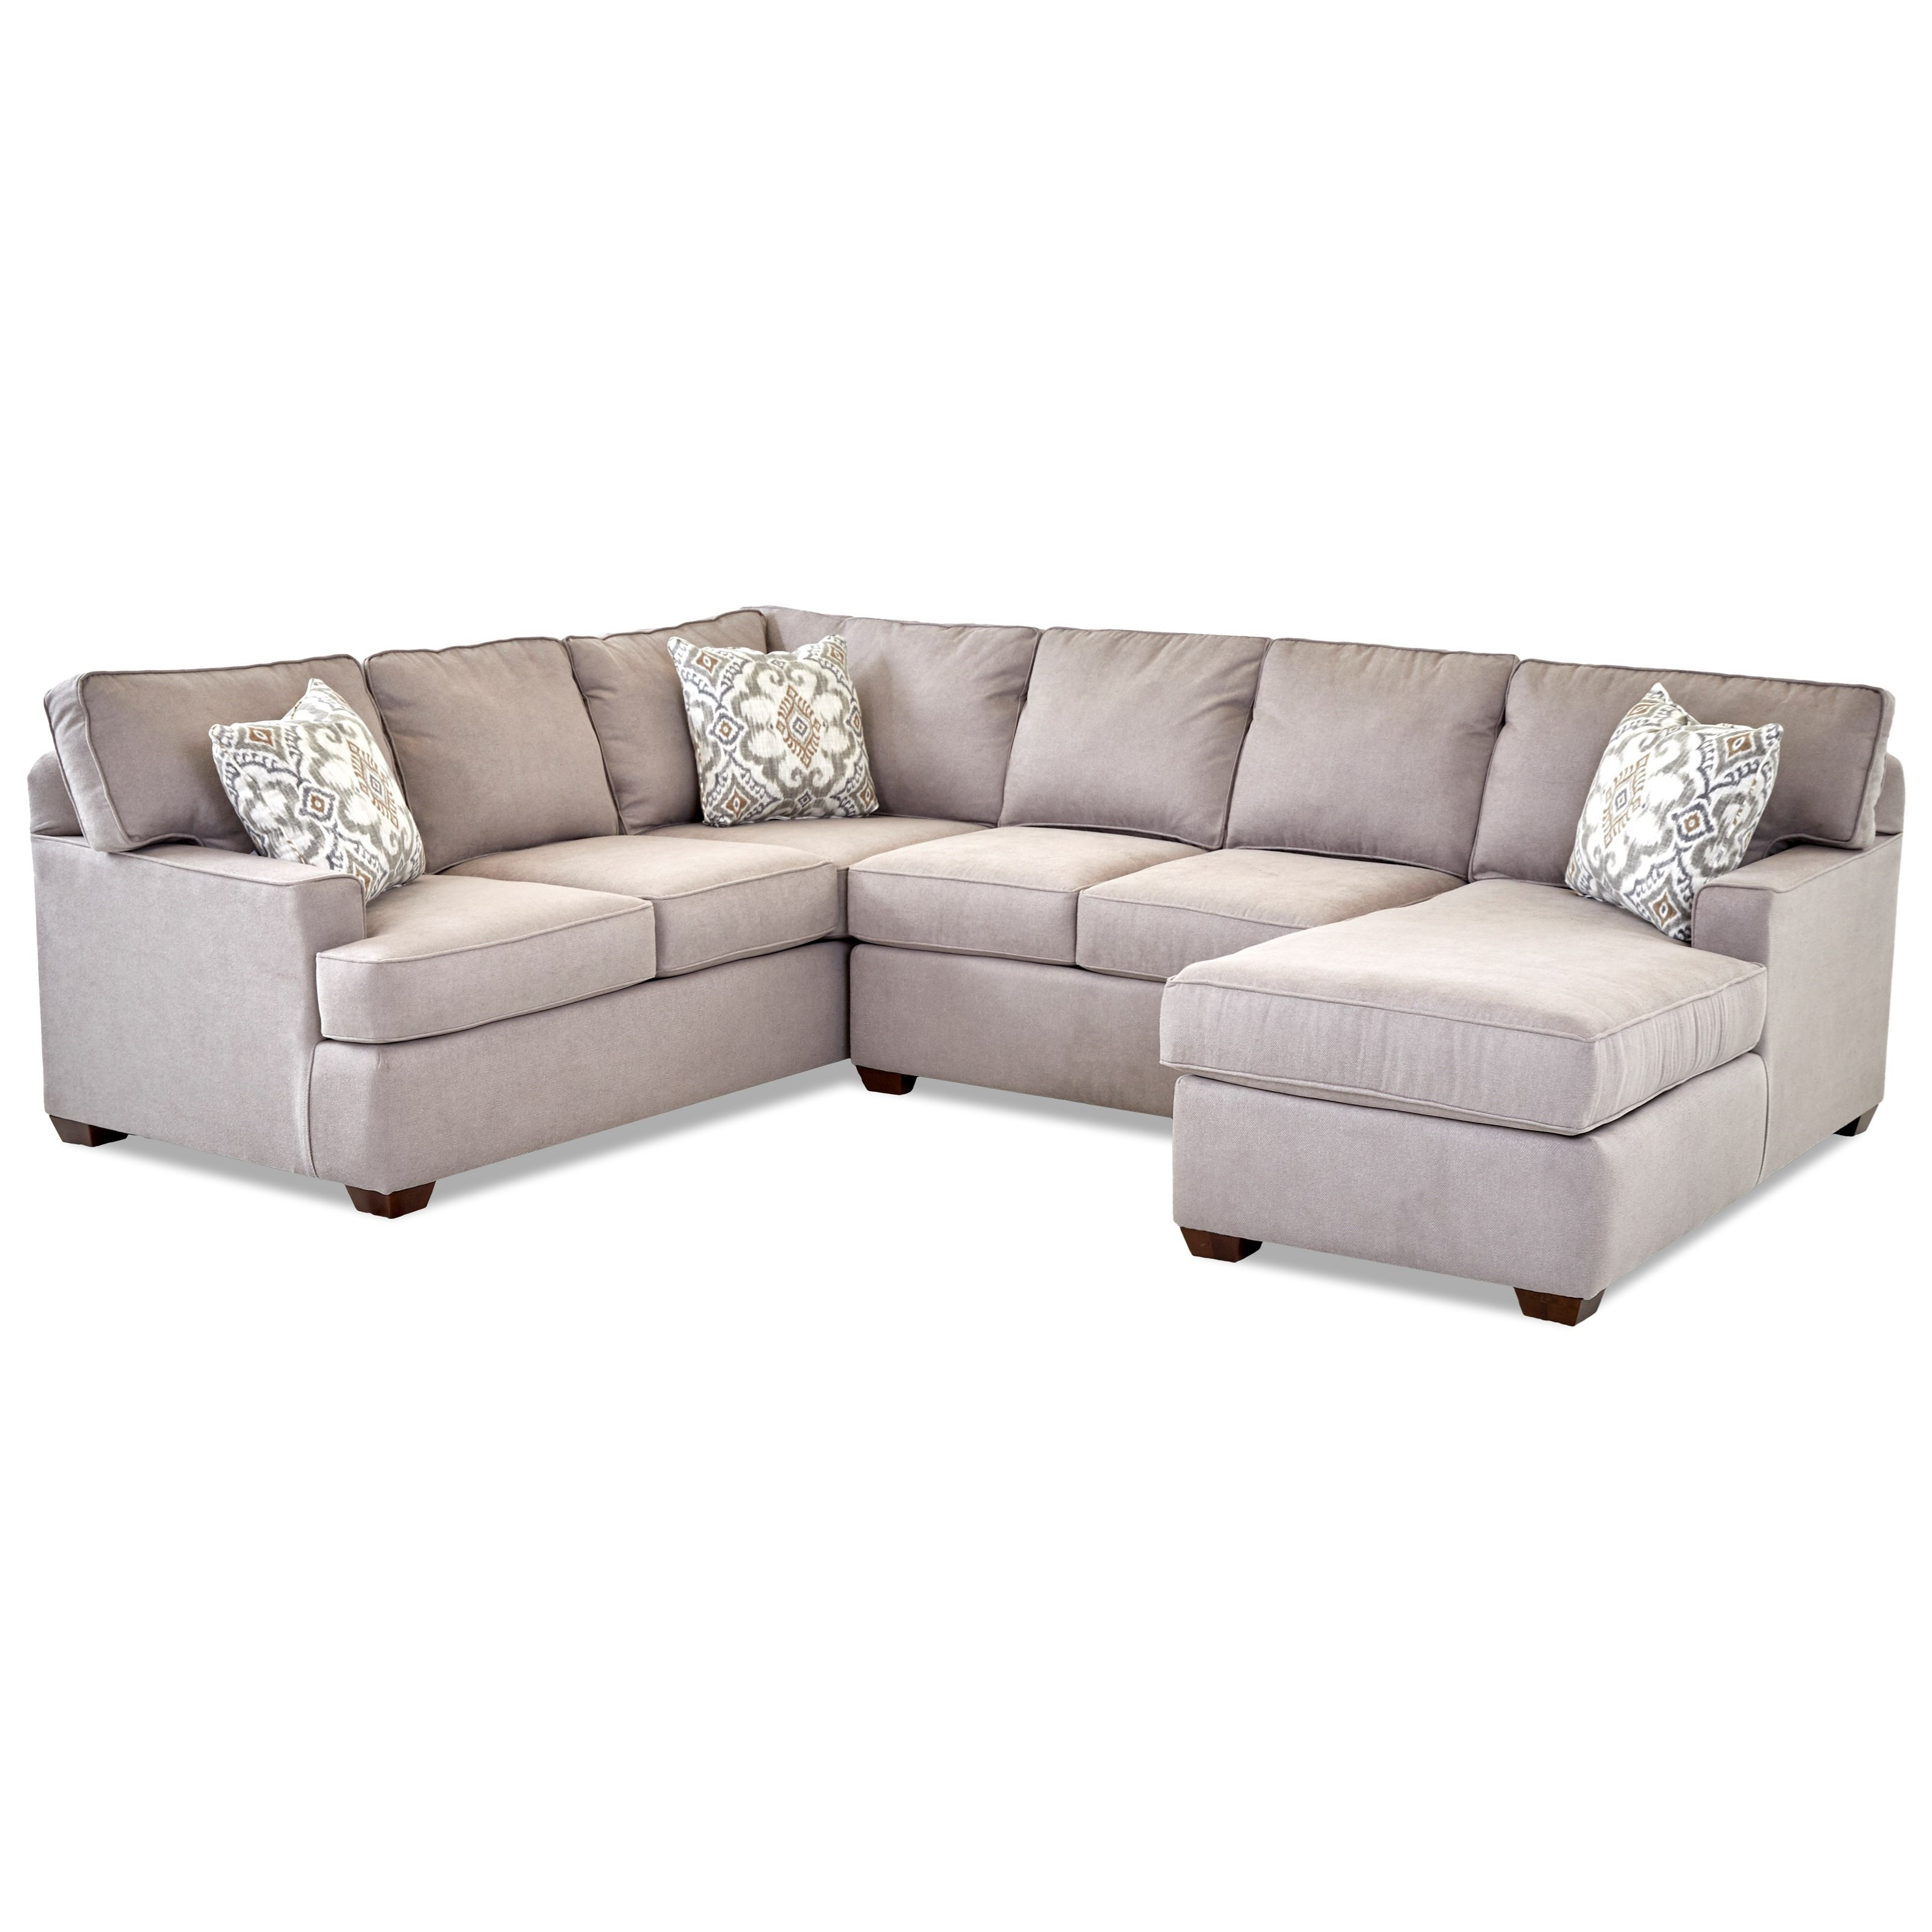 Pantego 3 Piece Sectional Sofa with RAF Chaise  by Klaussner at Johnny Janosik